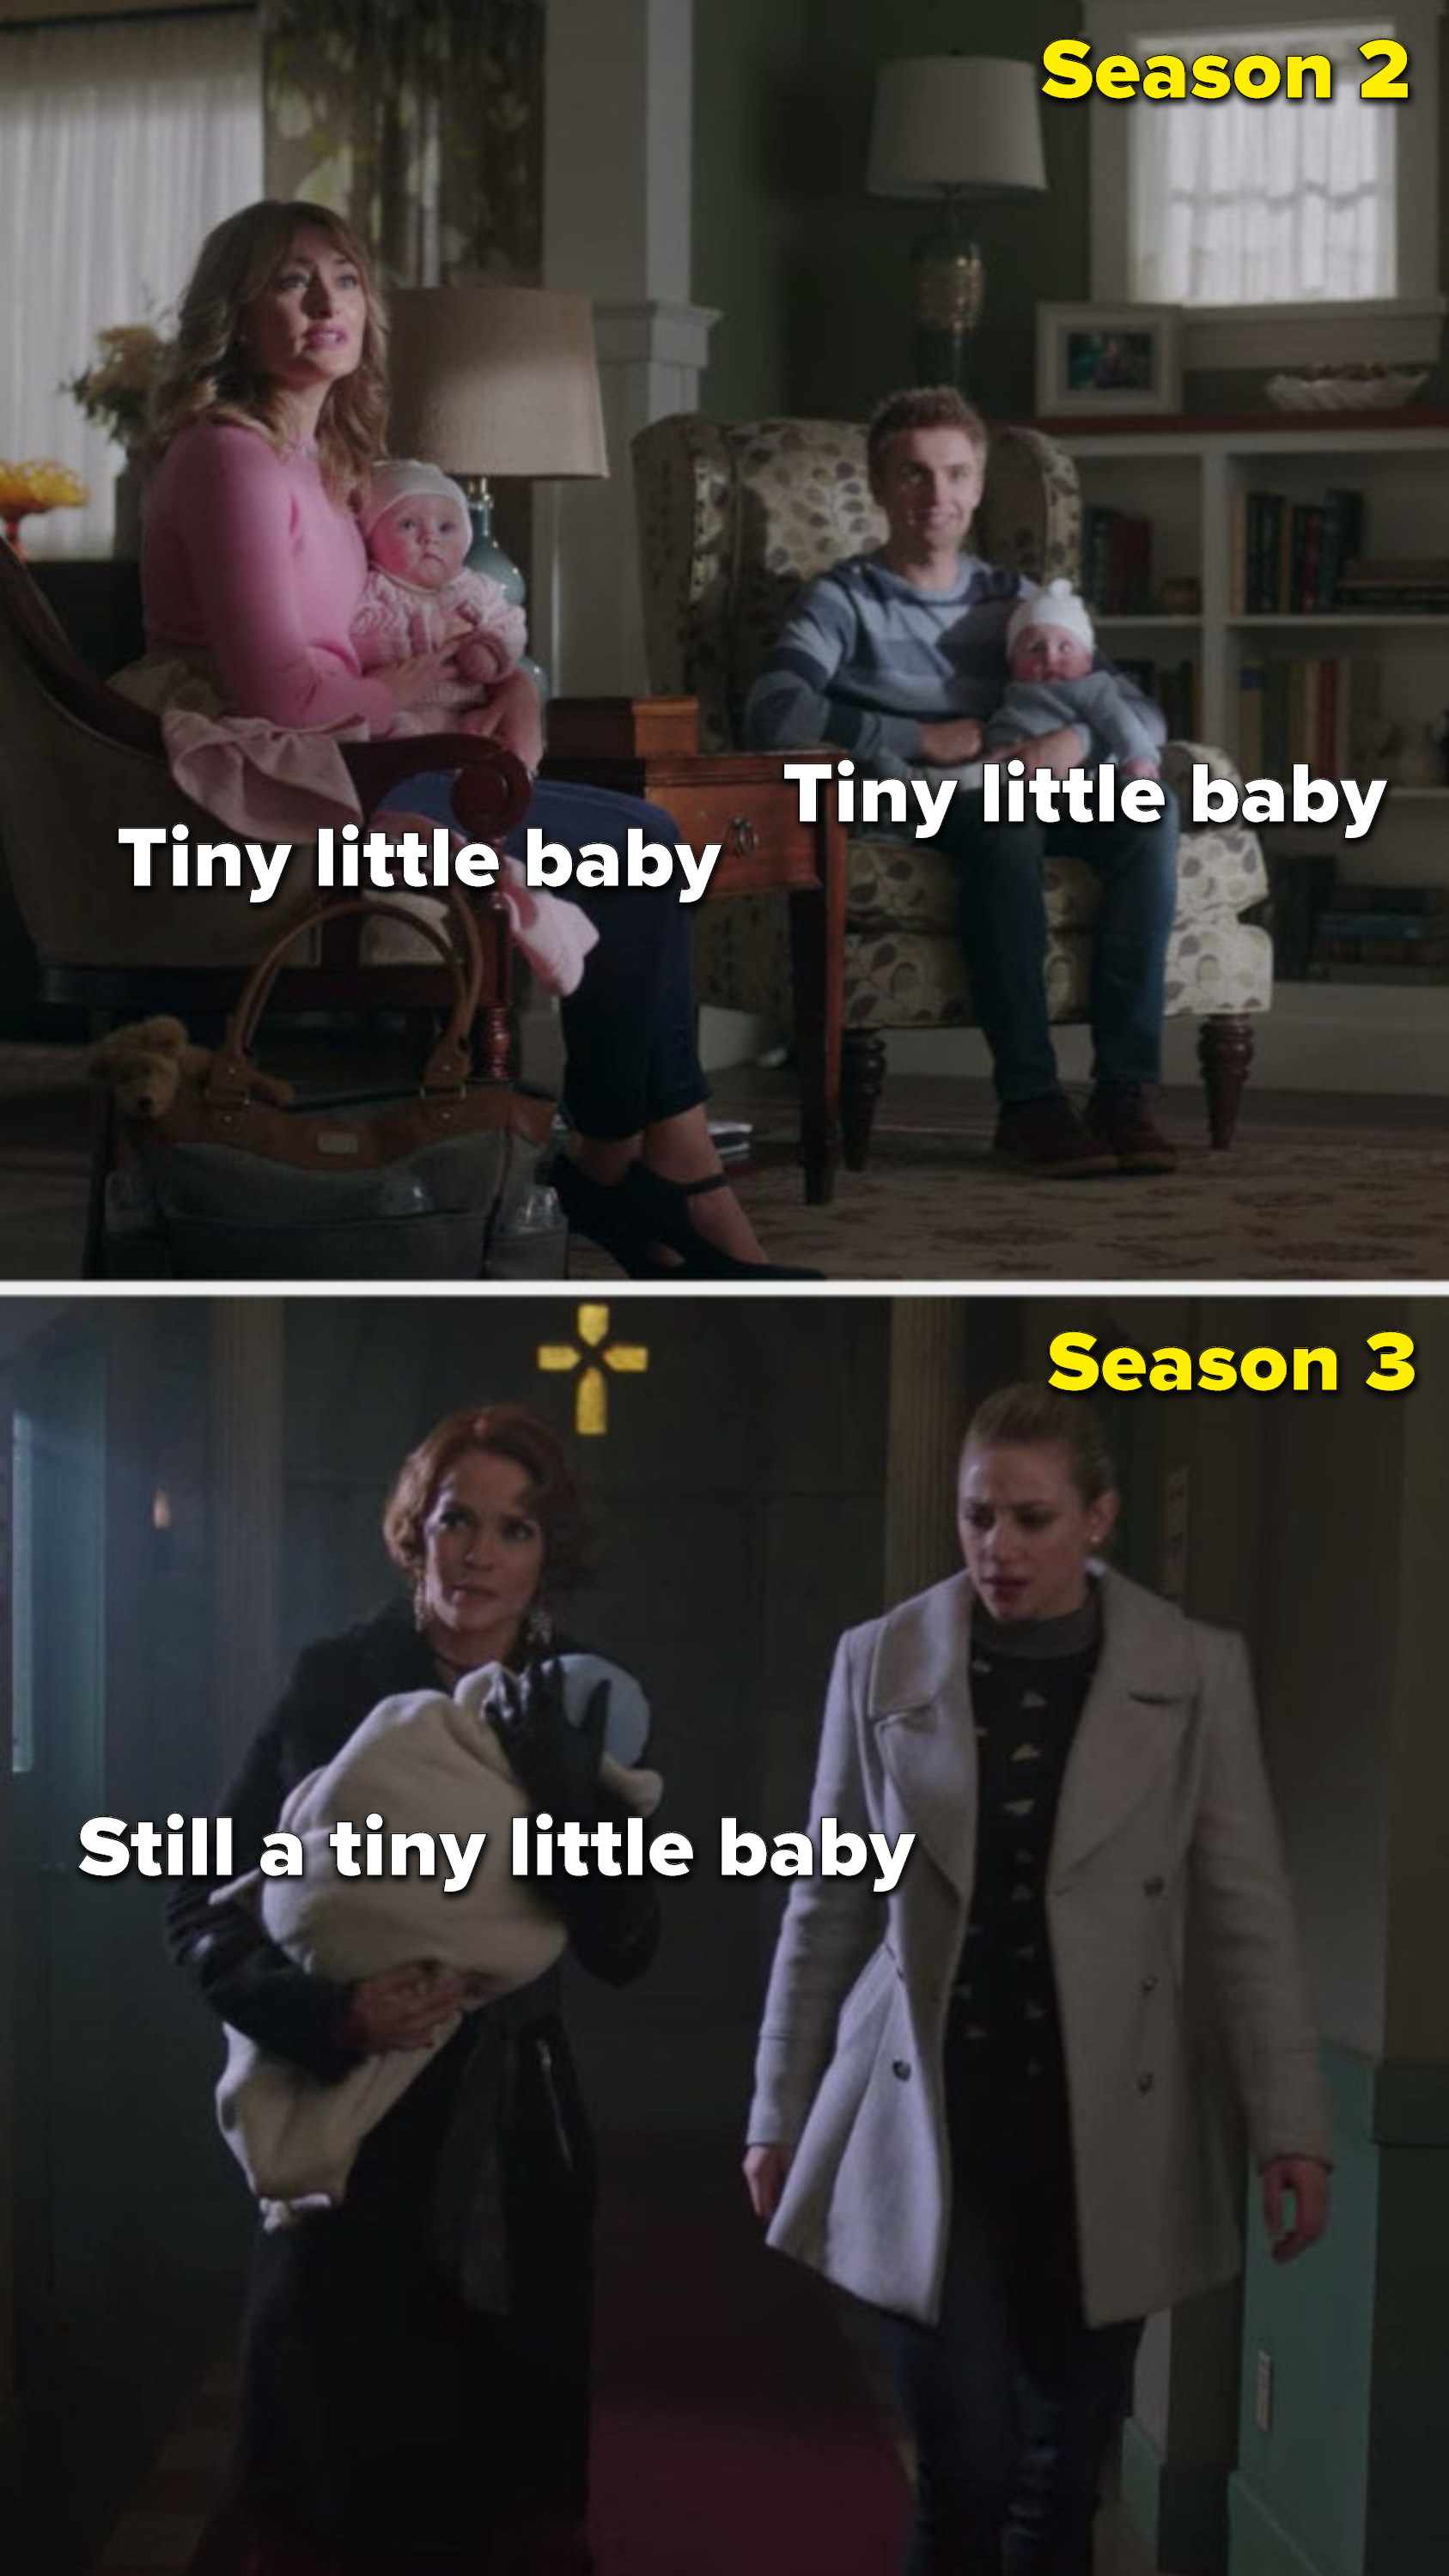 The twins being little babies in Season 2, and Penelope holding one of the still baby twins in Season 3